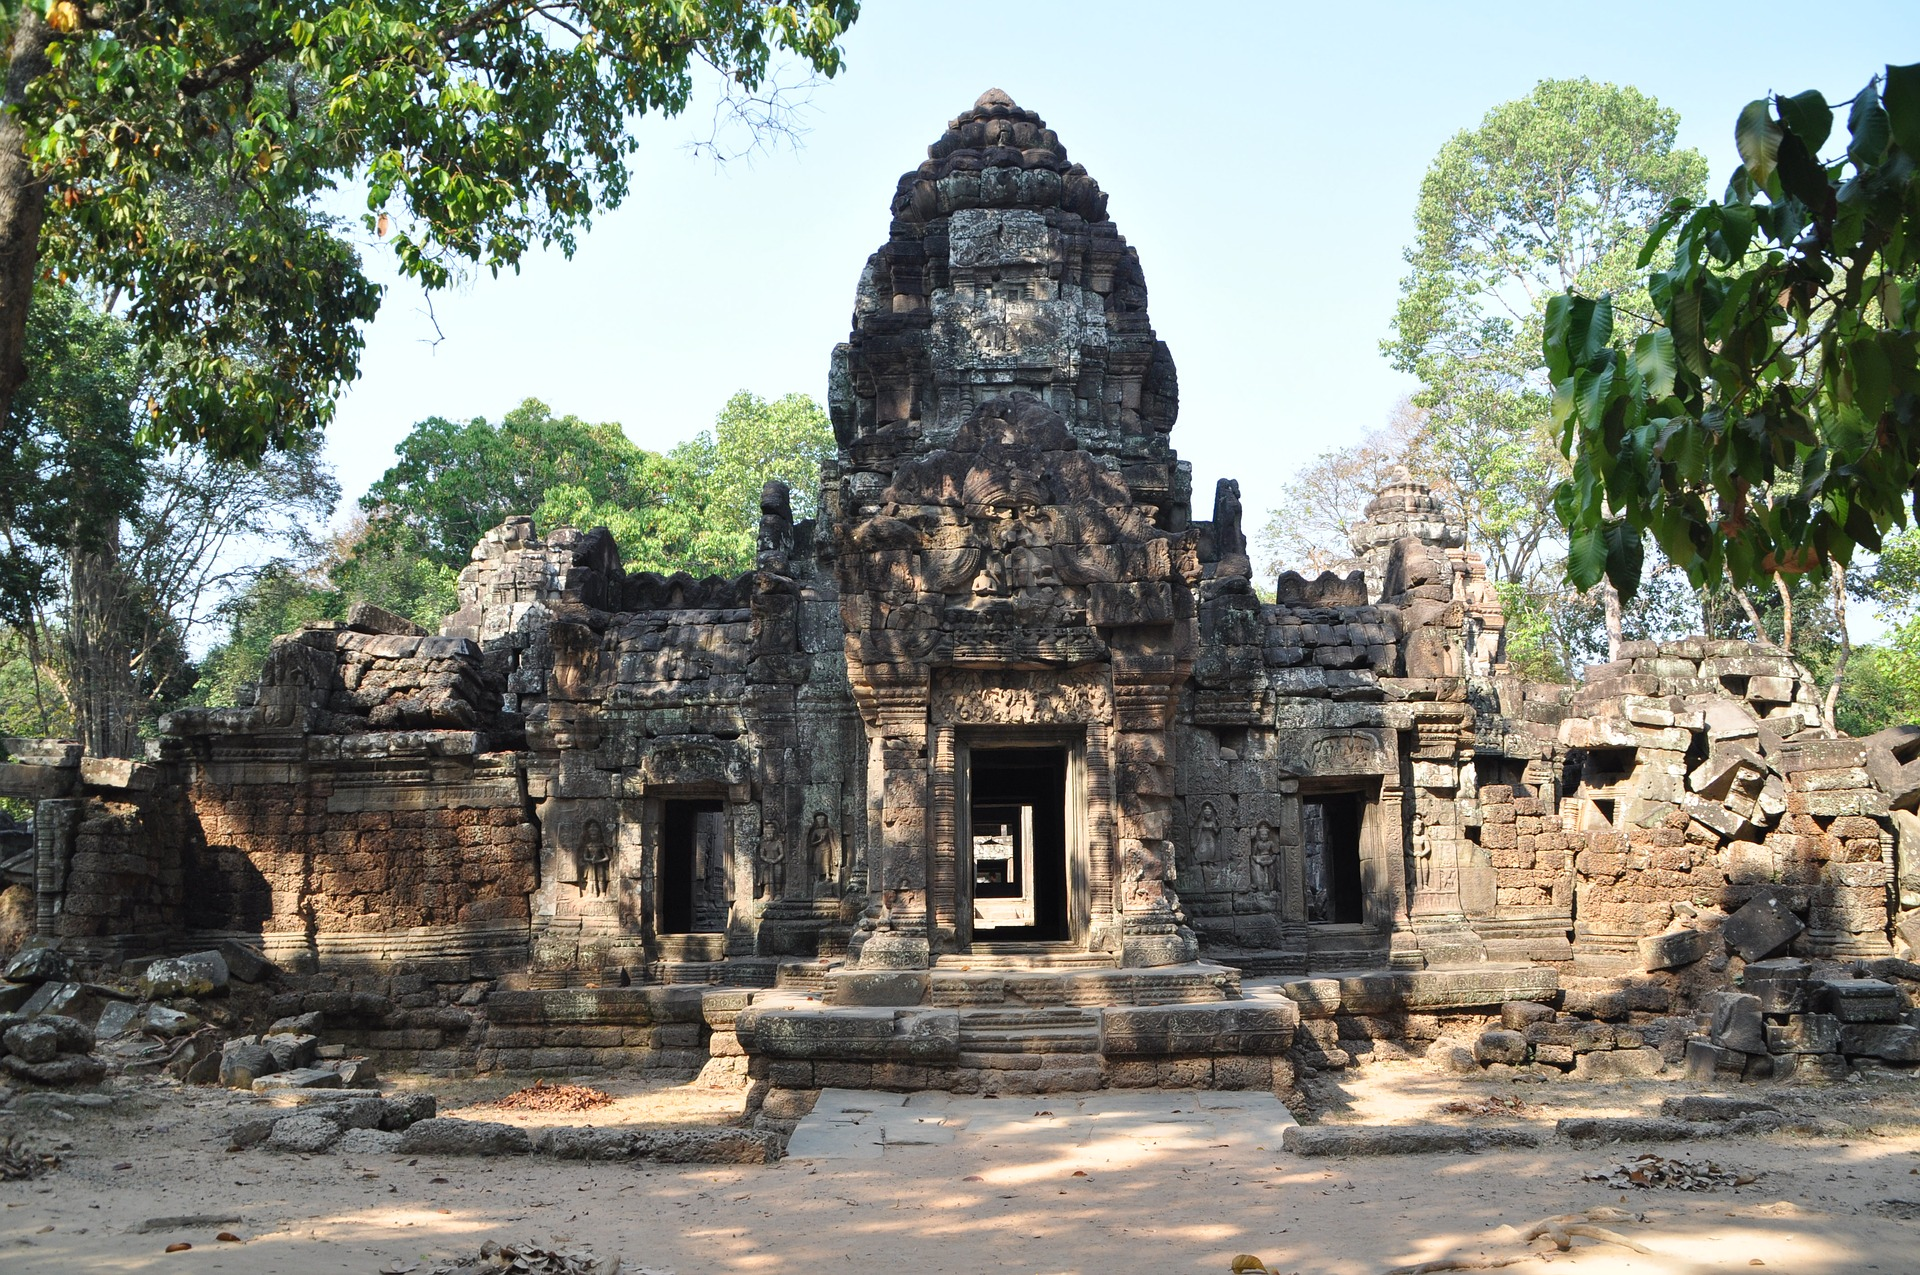 Angkor, a UNESCO World Heritage Site in Cambodia